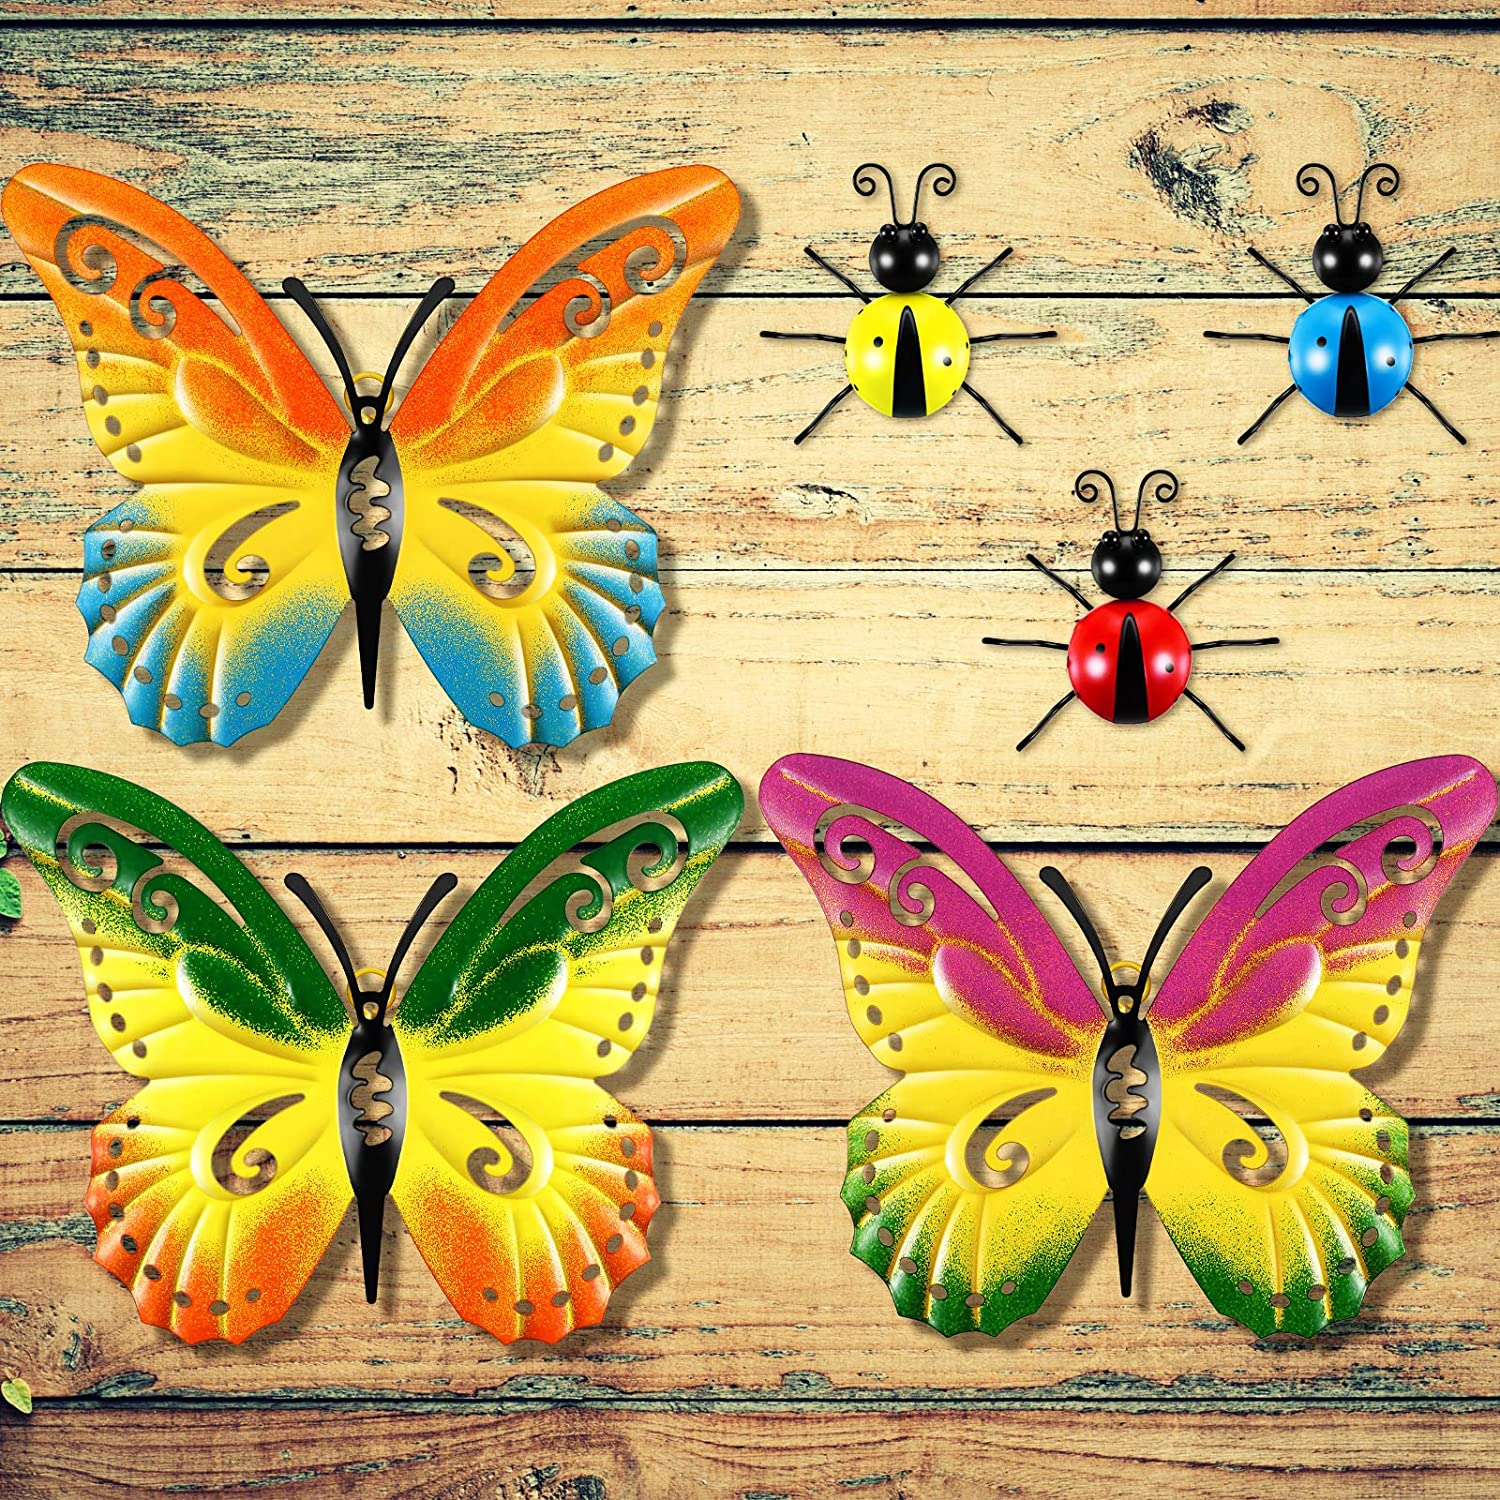 6 Pieces Ladybug and Butterfly Garden Decor Set 3 Pieces Metal Ladybugs Outdoor Wall Sculptures 3 Pieces Metal Butterfly Wall Decor for Kitchen Outdoor Fence Garden Tree, Porch, Patio and Yard